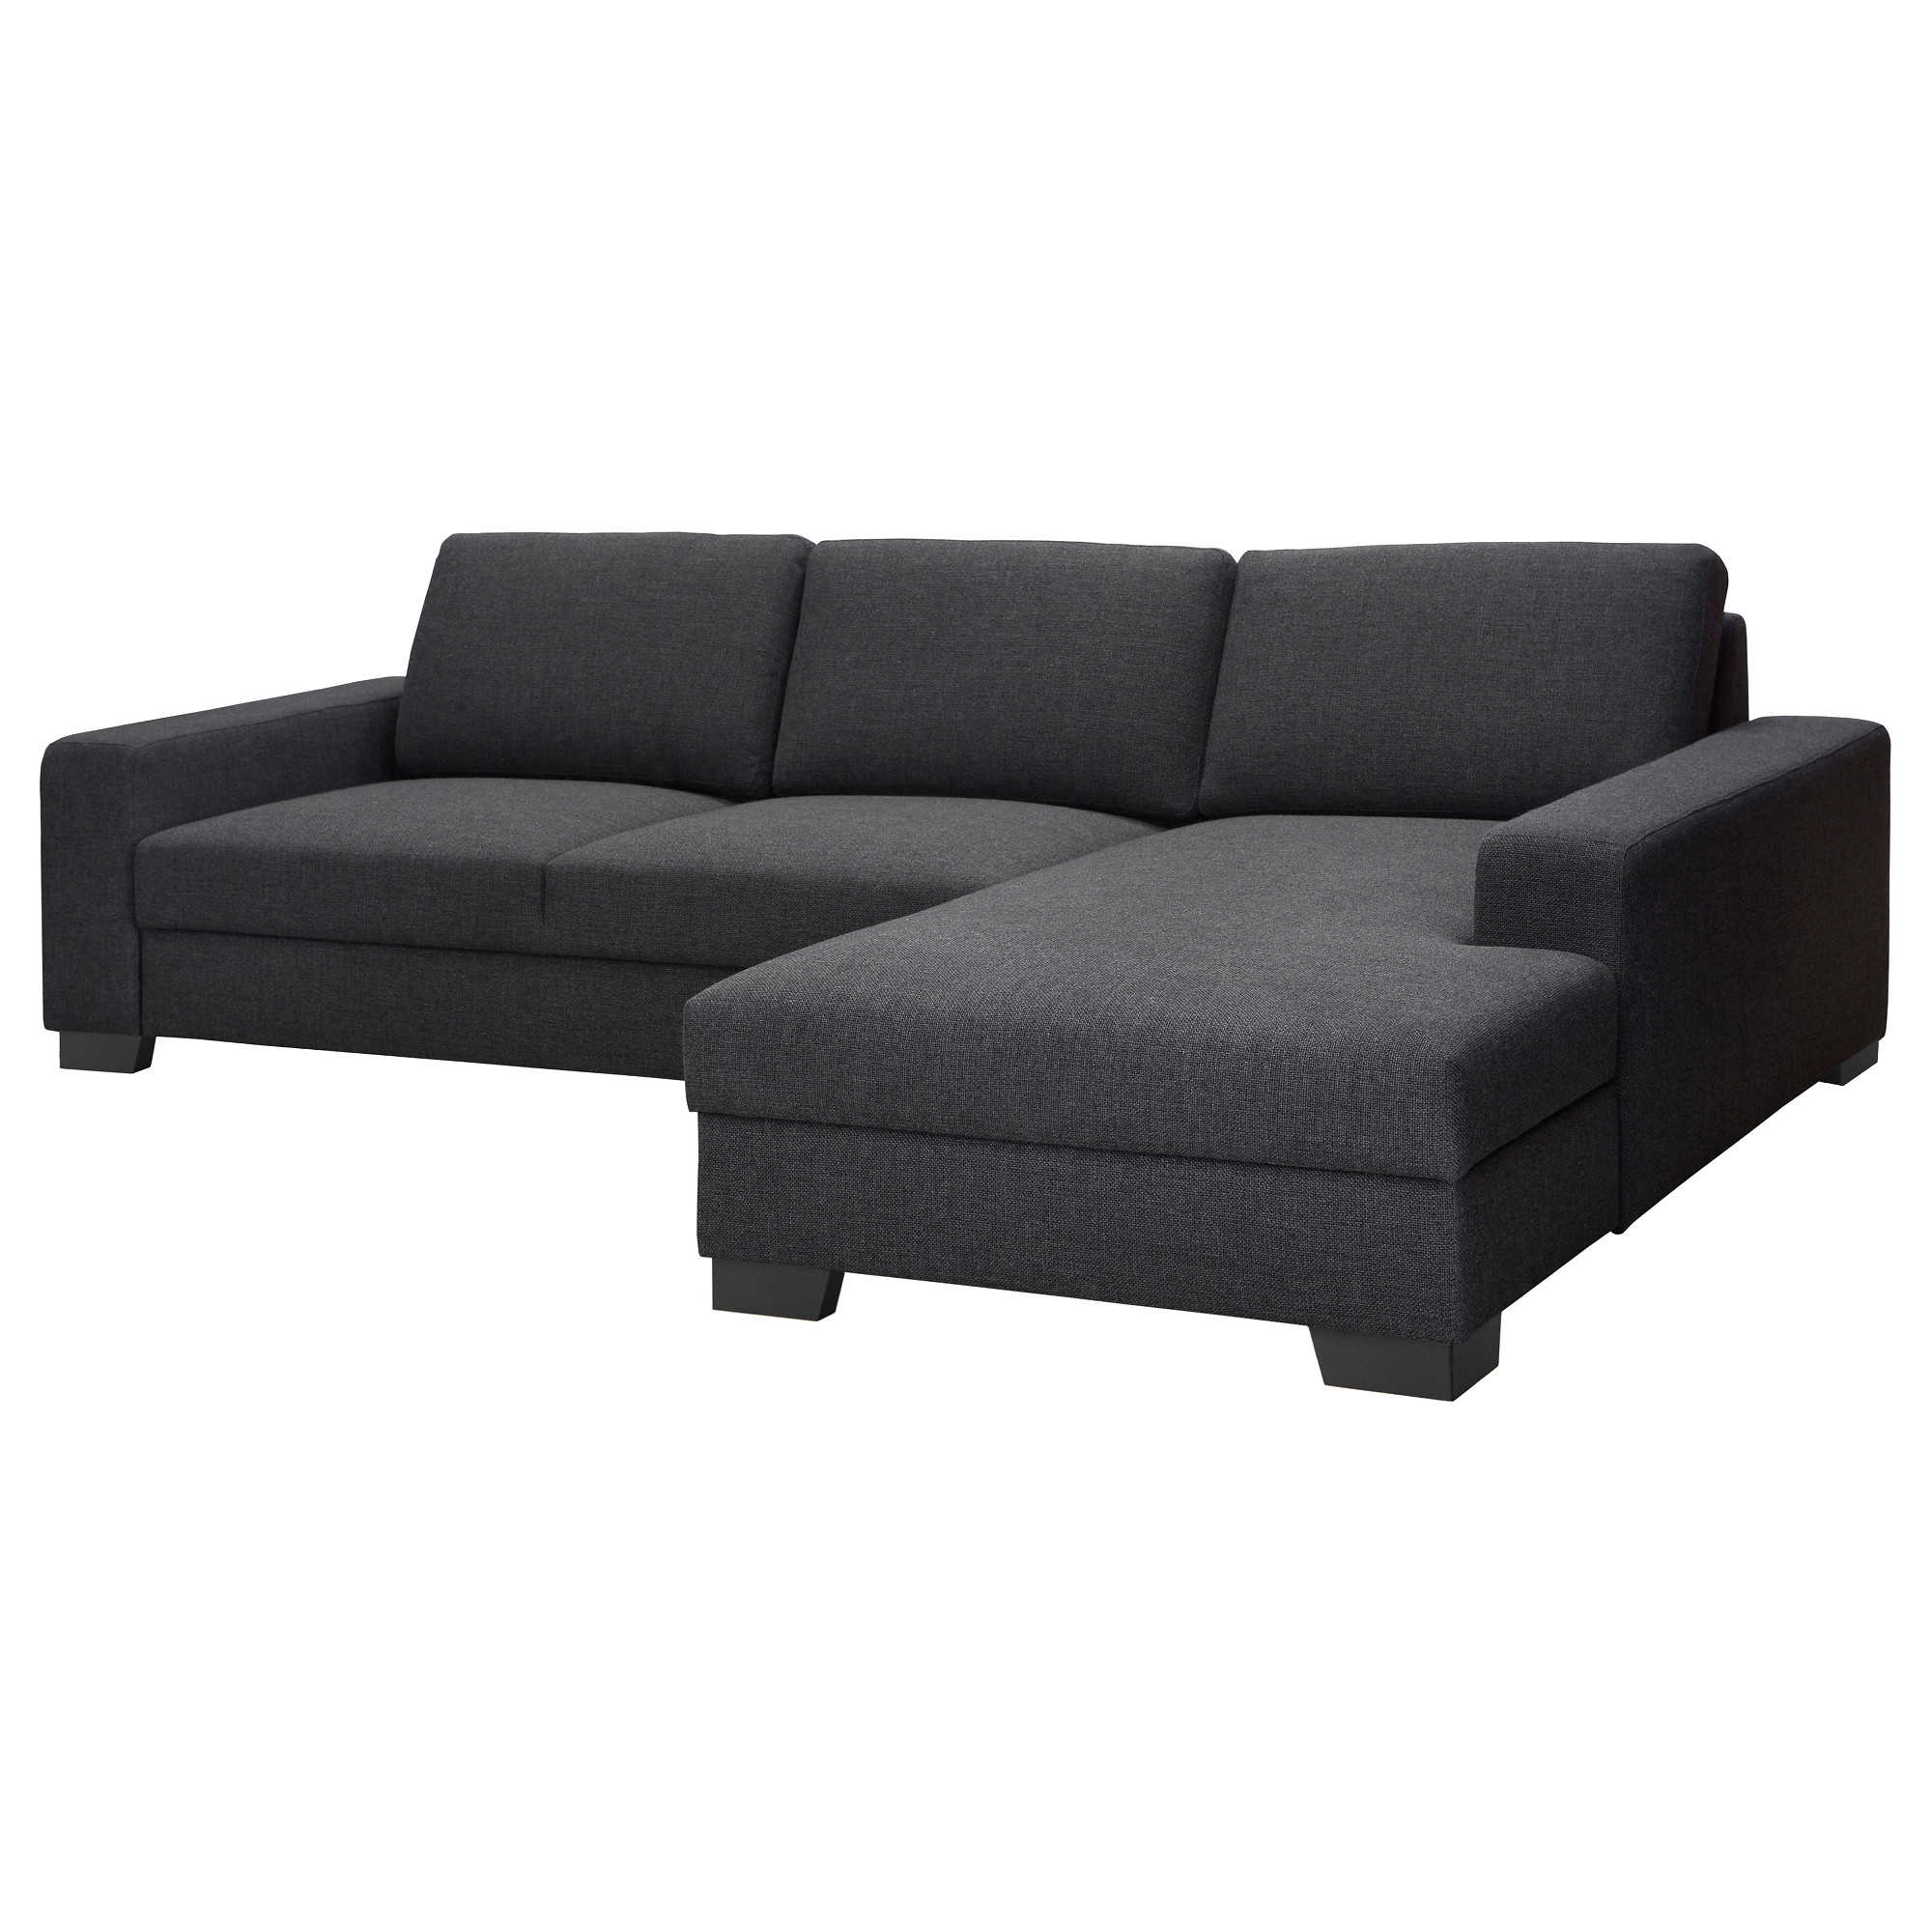 ecksofa g nstig. Black Bedroom Furniture Sets. Home Design Ideas